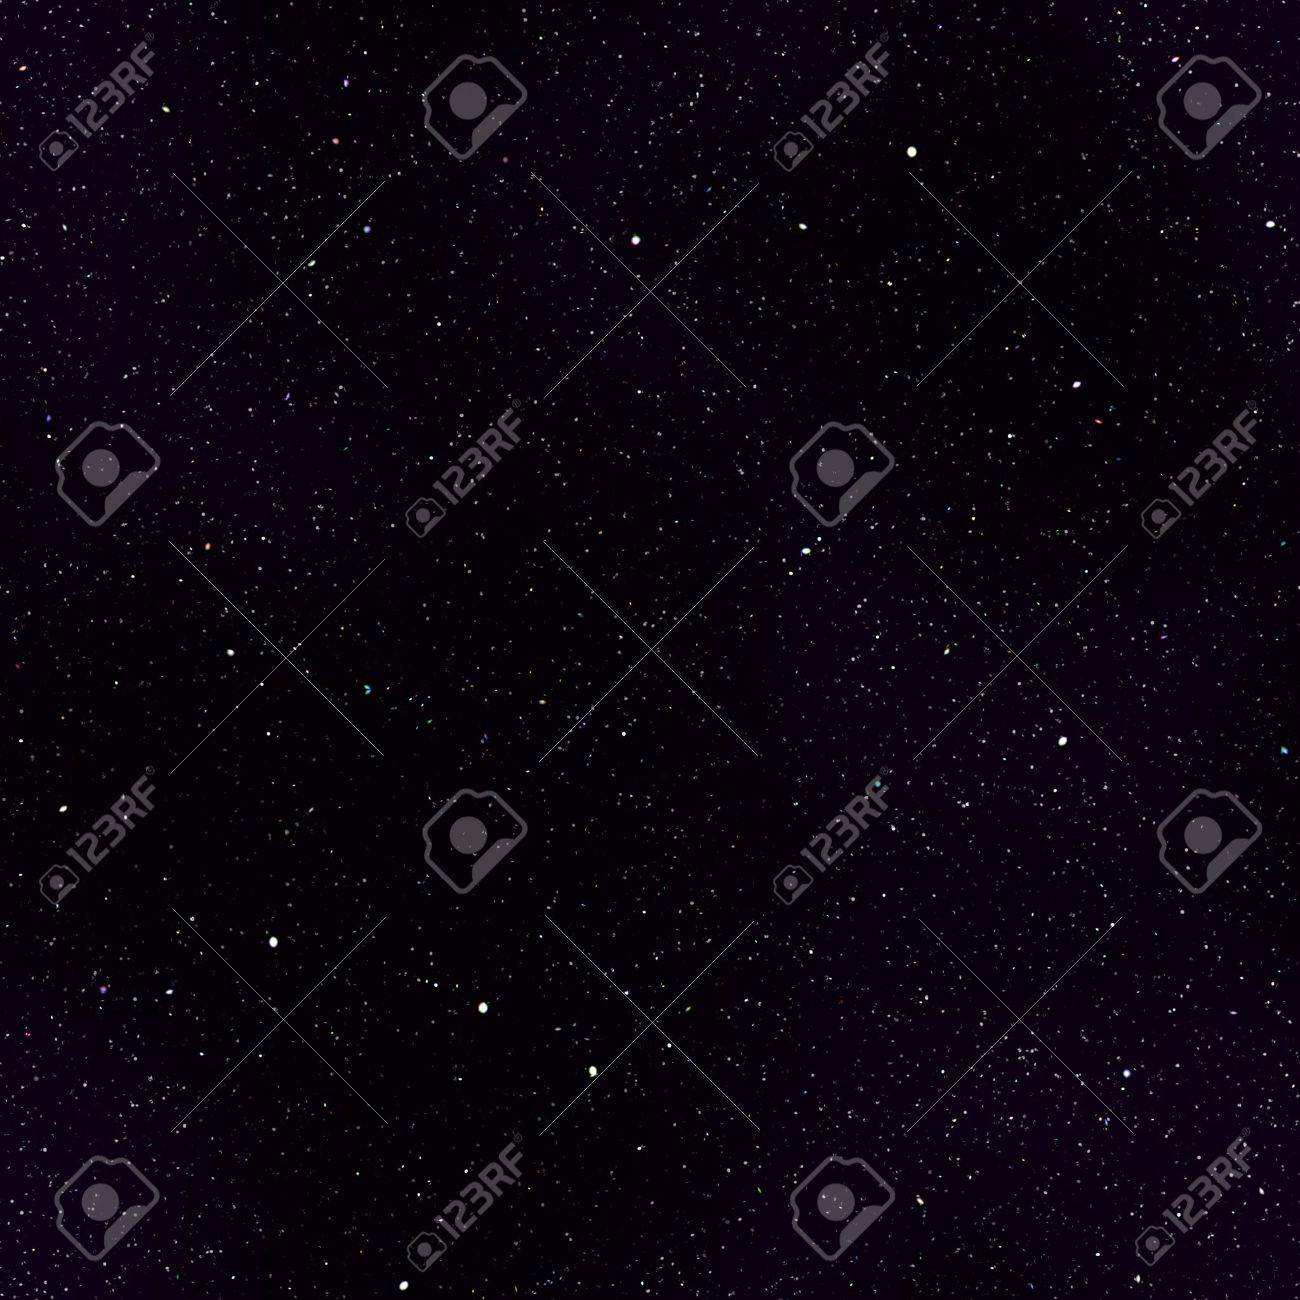 Abstract dark deep space background with stars. Stock Photo - 19429536